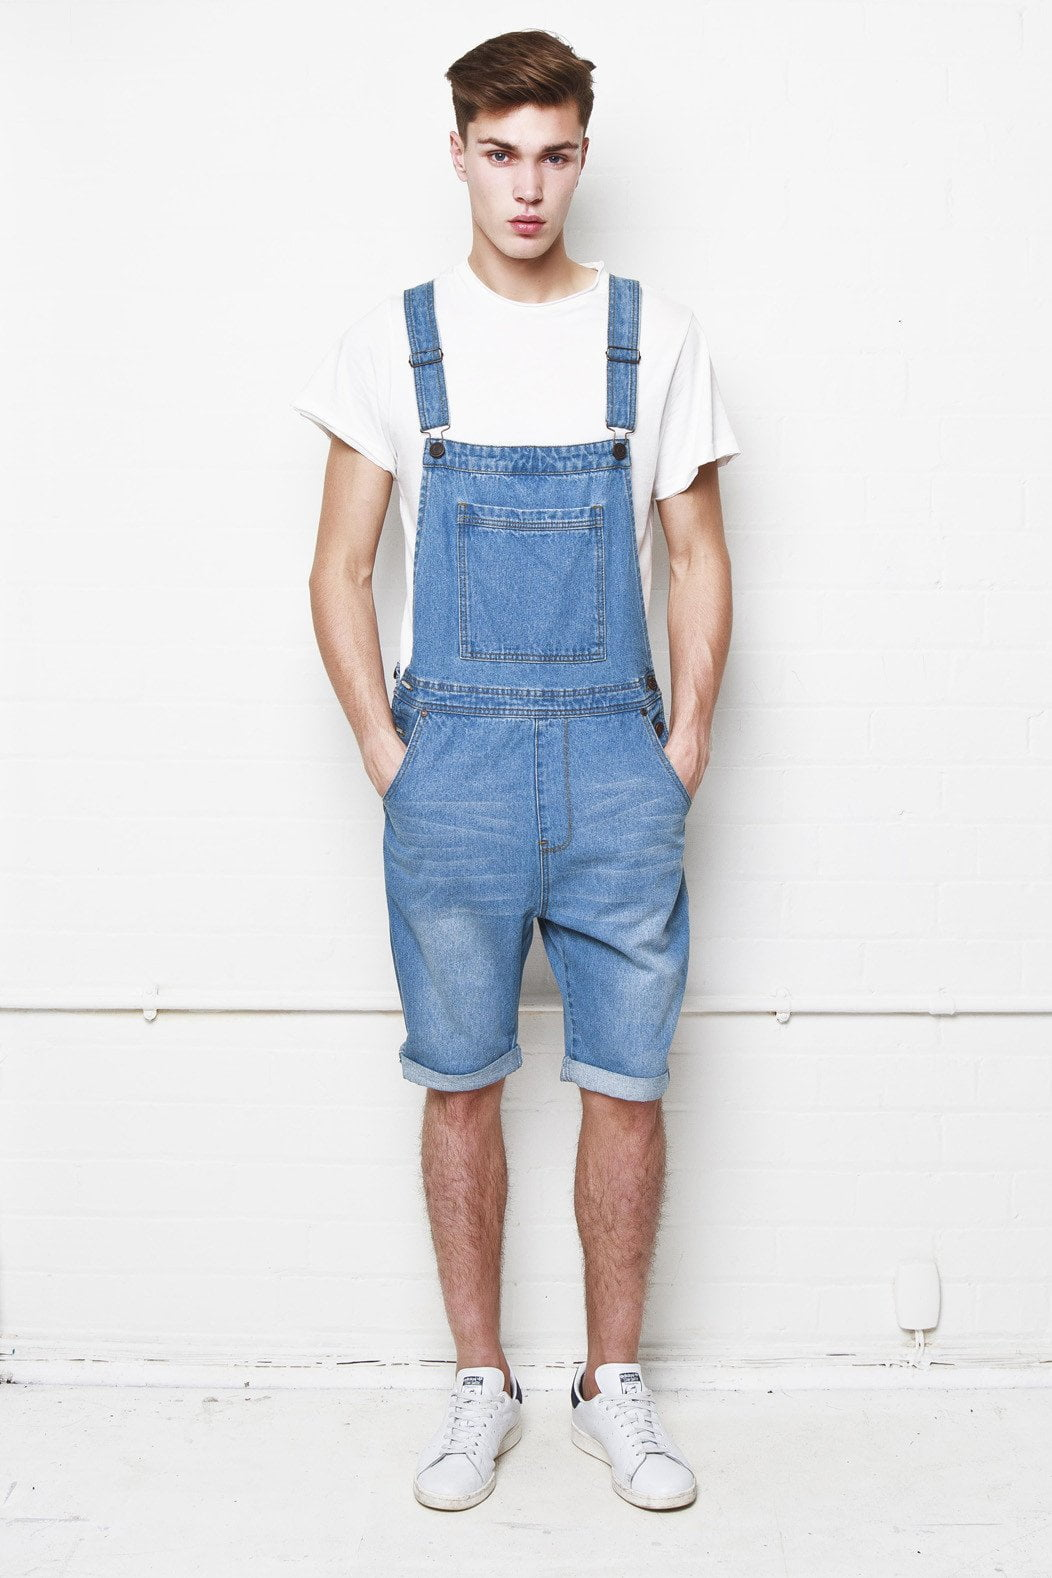 Louisiana Denim Dungaree Shorts - Liquor N Poker  Liquor N Poker